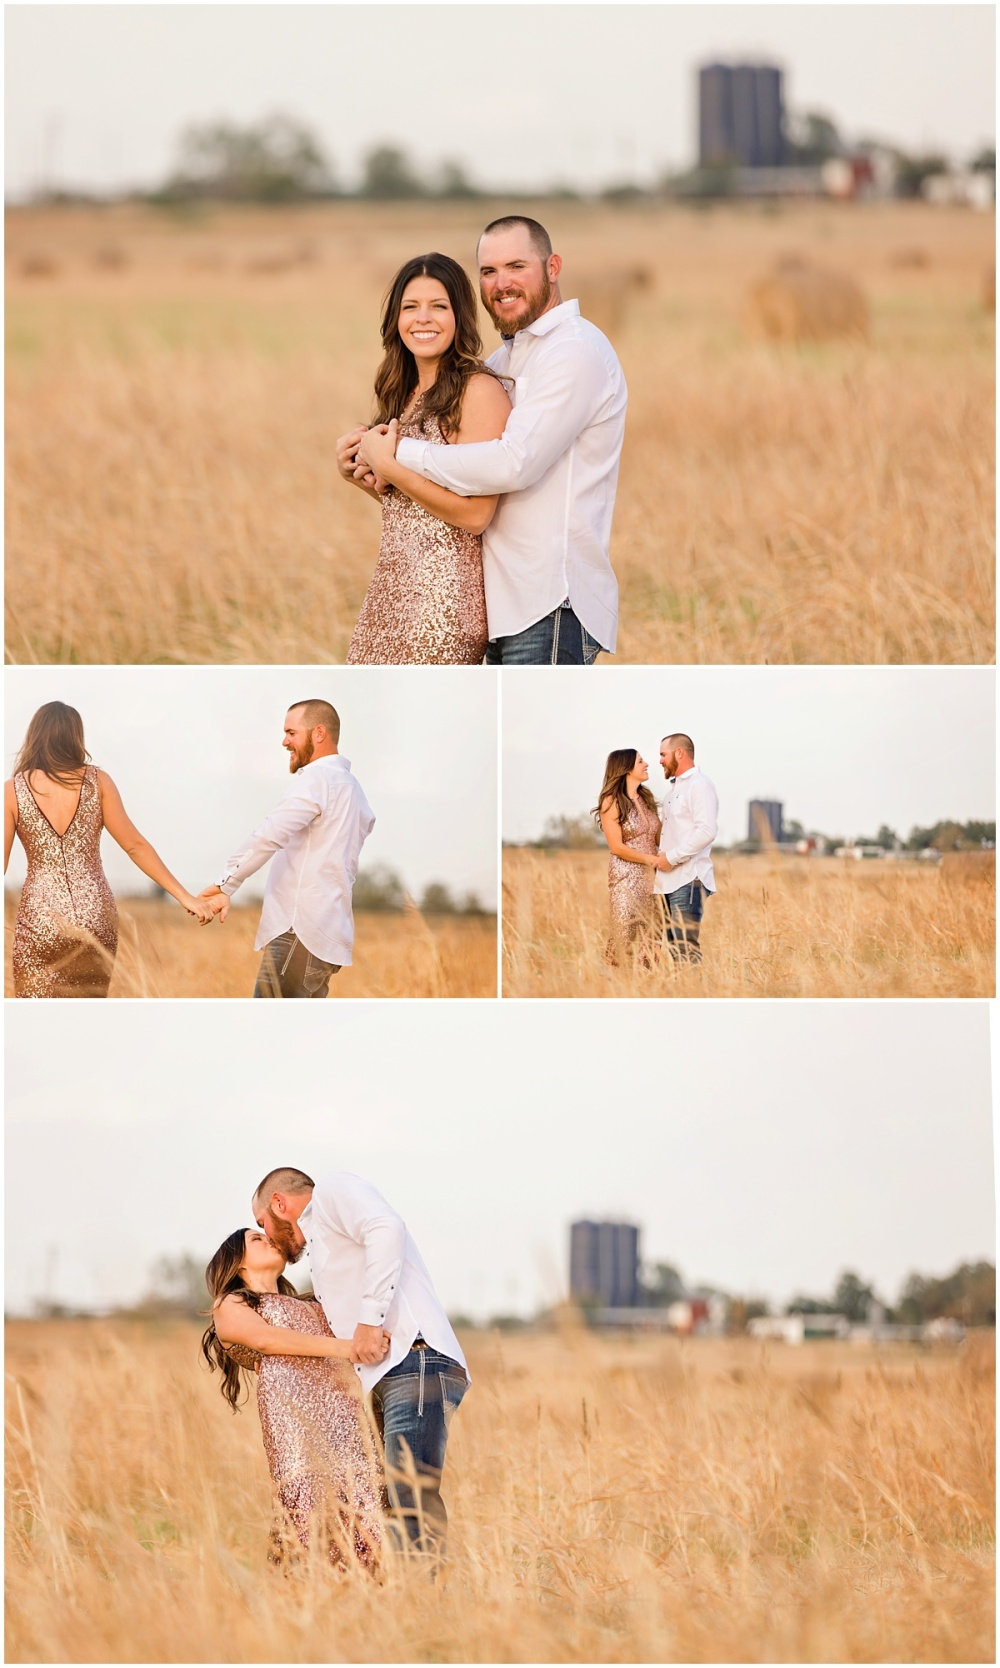 Family-Children-Maternity-Portraits-San-Antonio-Hill-Country-Texas-Carly-Barton-Photography_0076.jpg